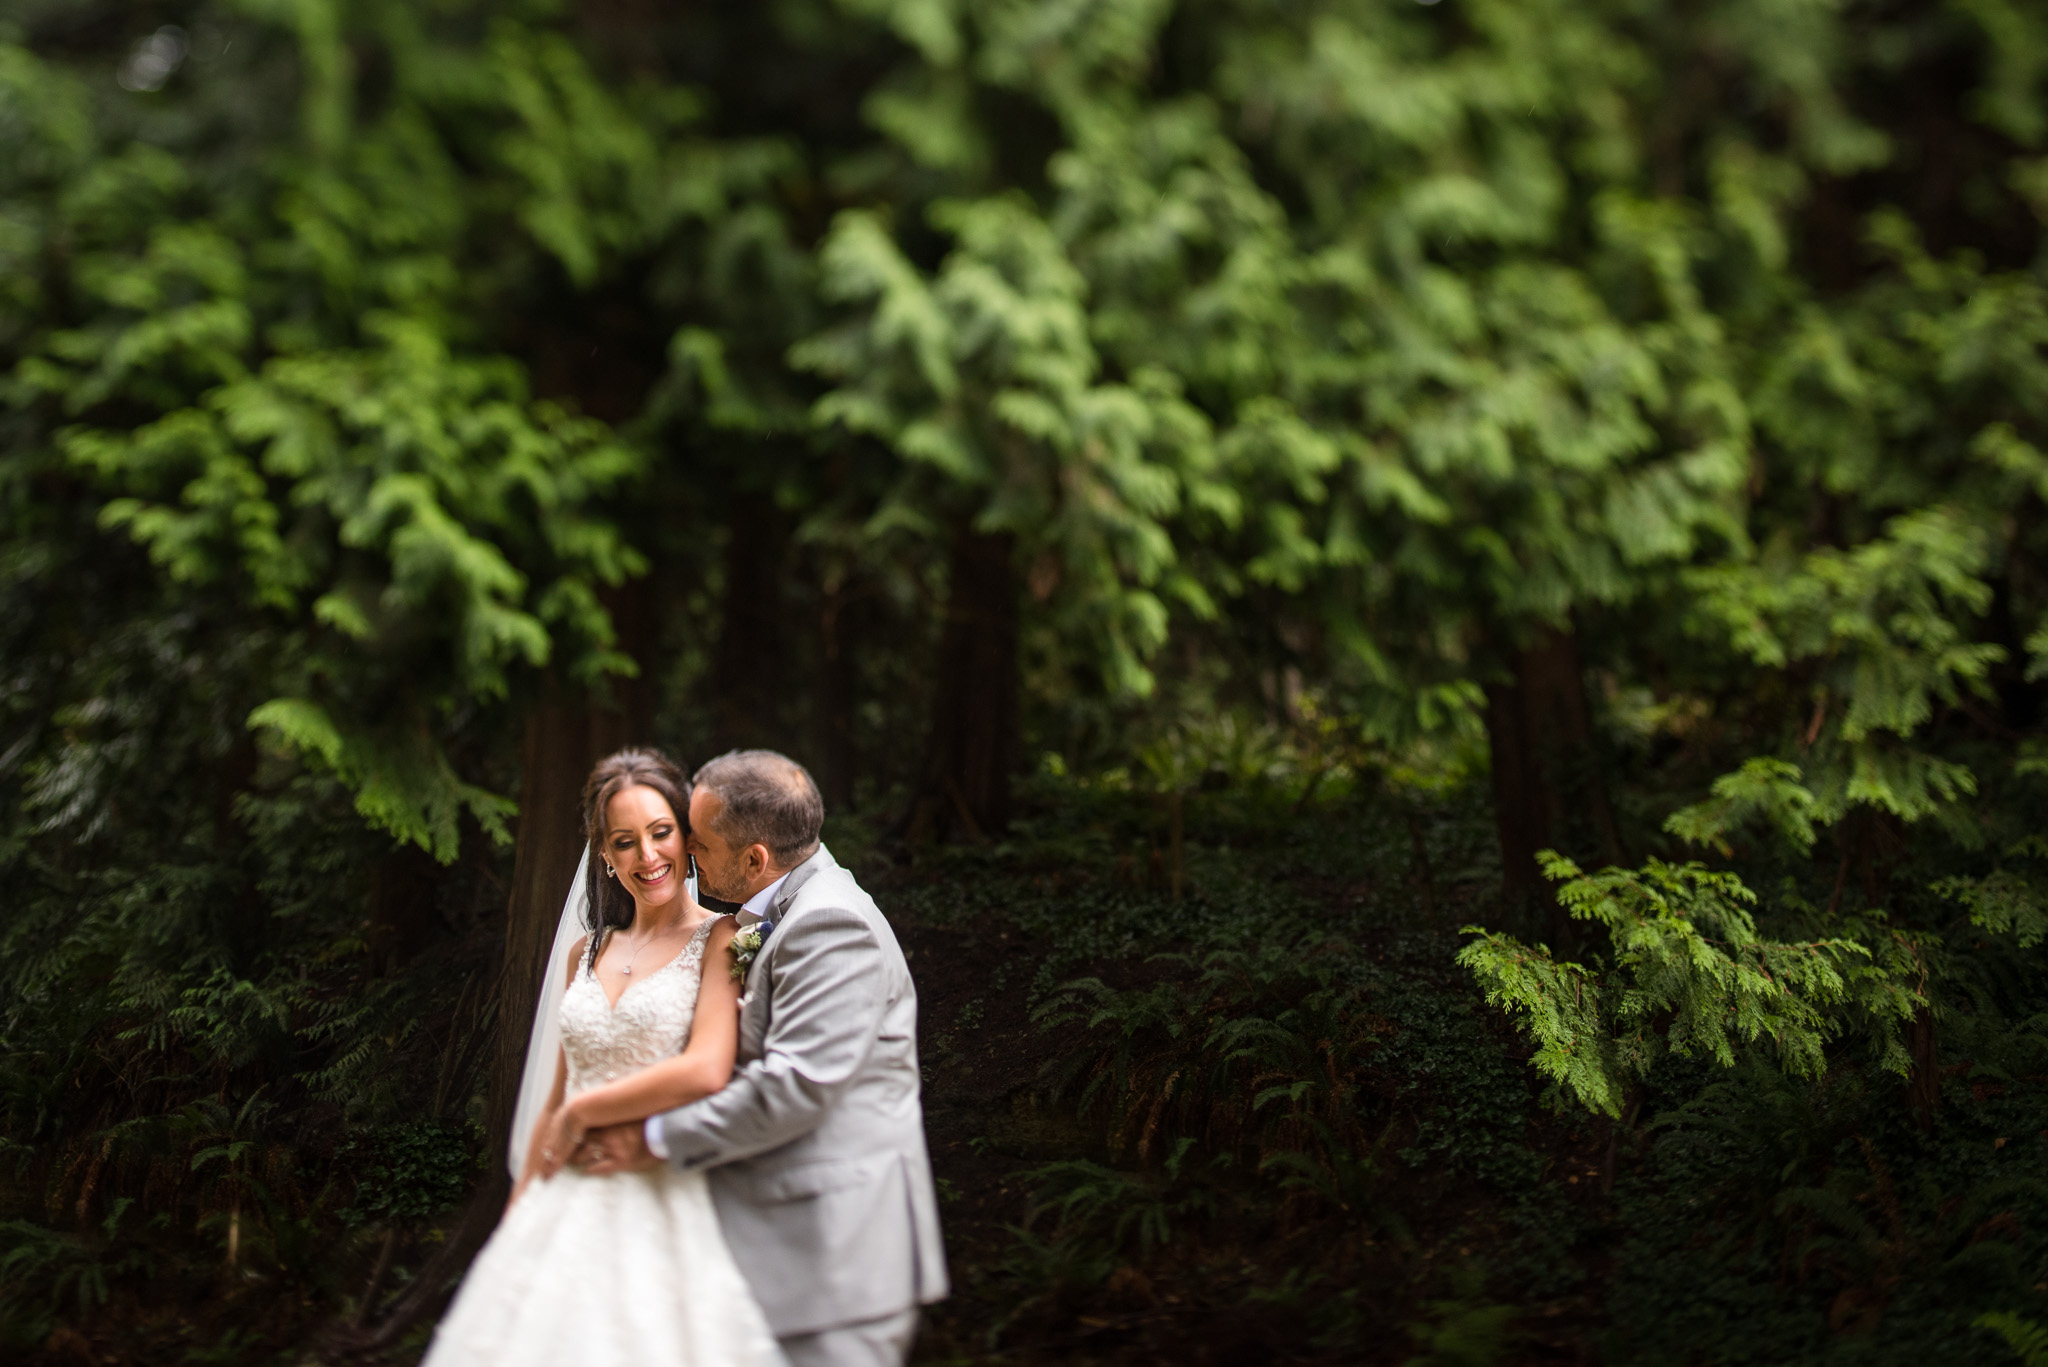 linwood-house-wedding-roberts-creek-sunshine-coast-wedding-photographers-25.jpg